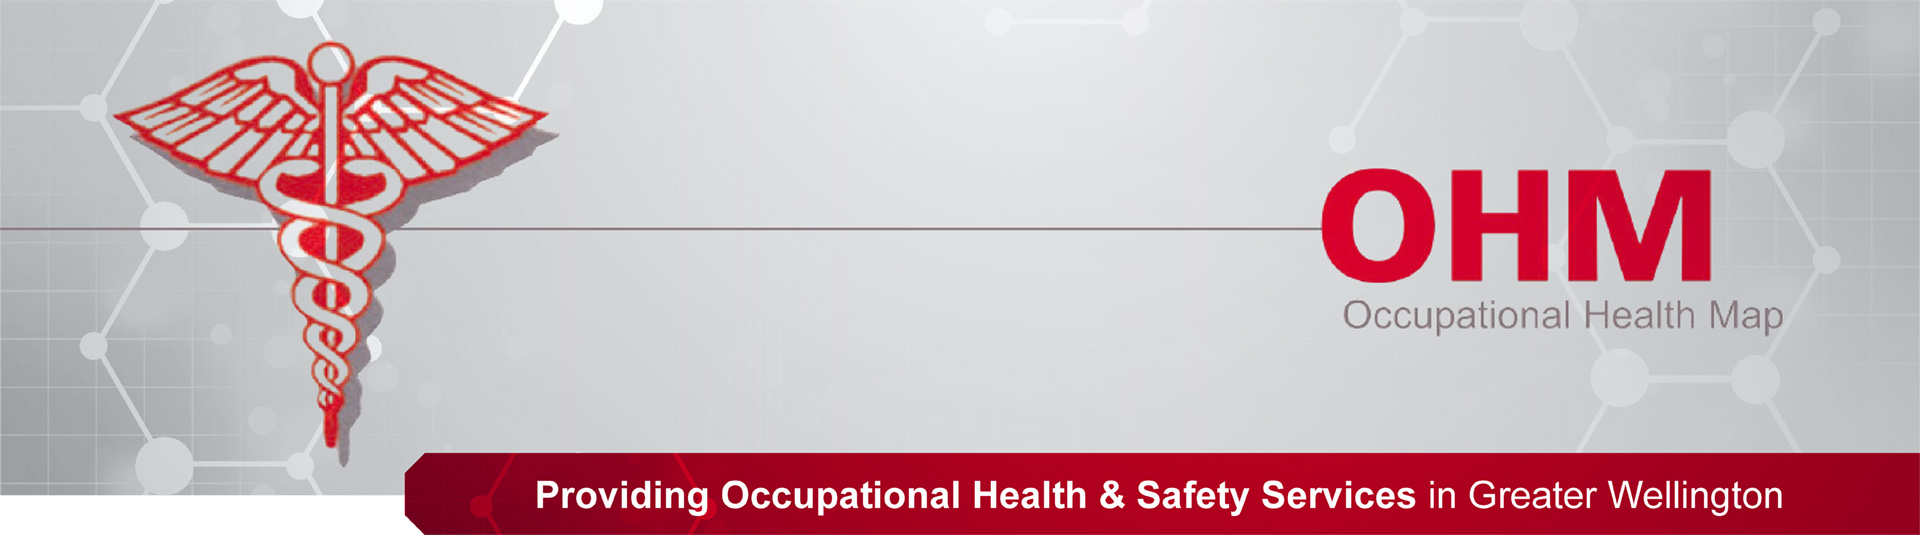 Occupational Health Map